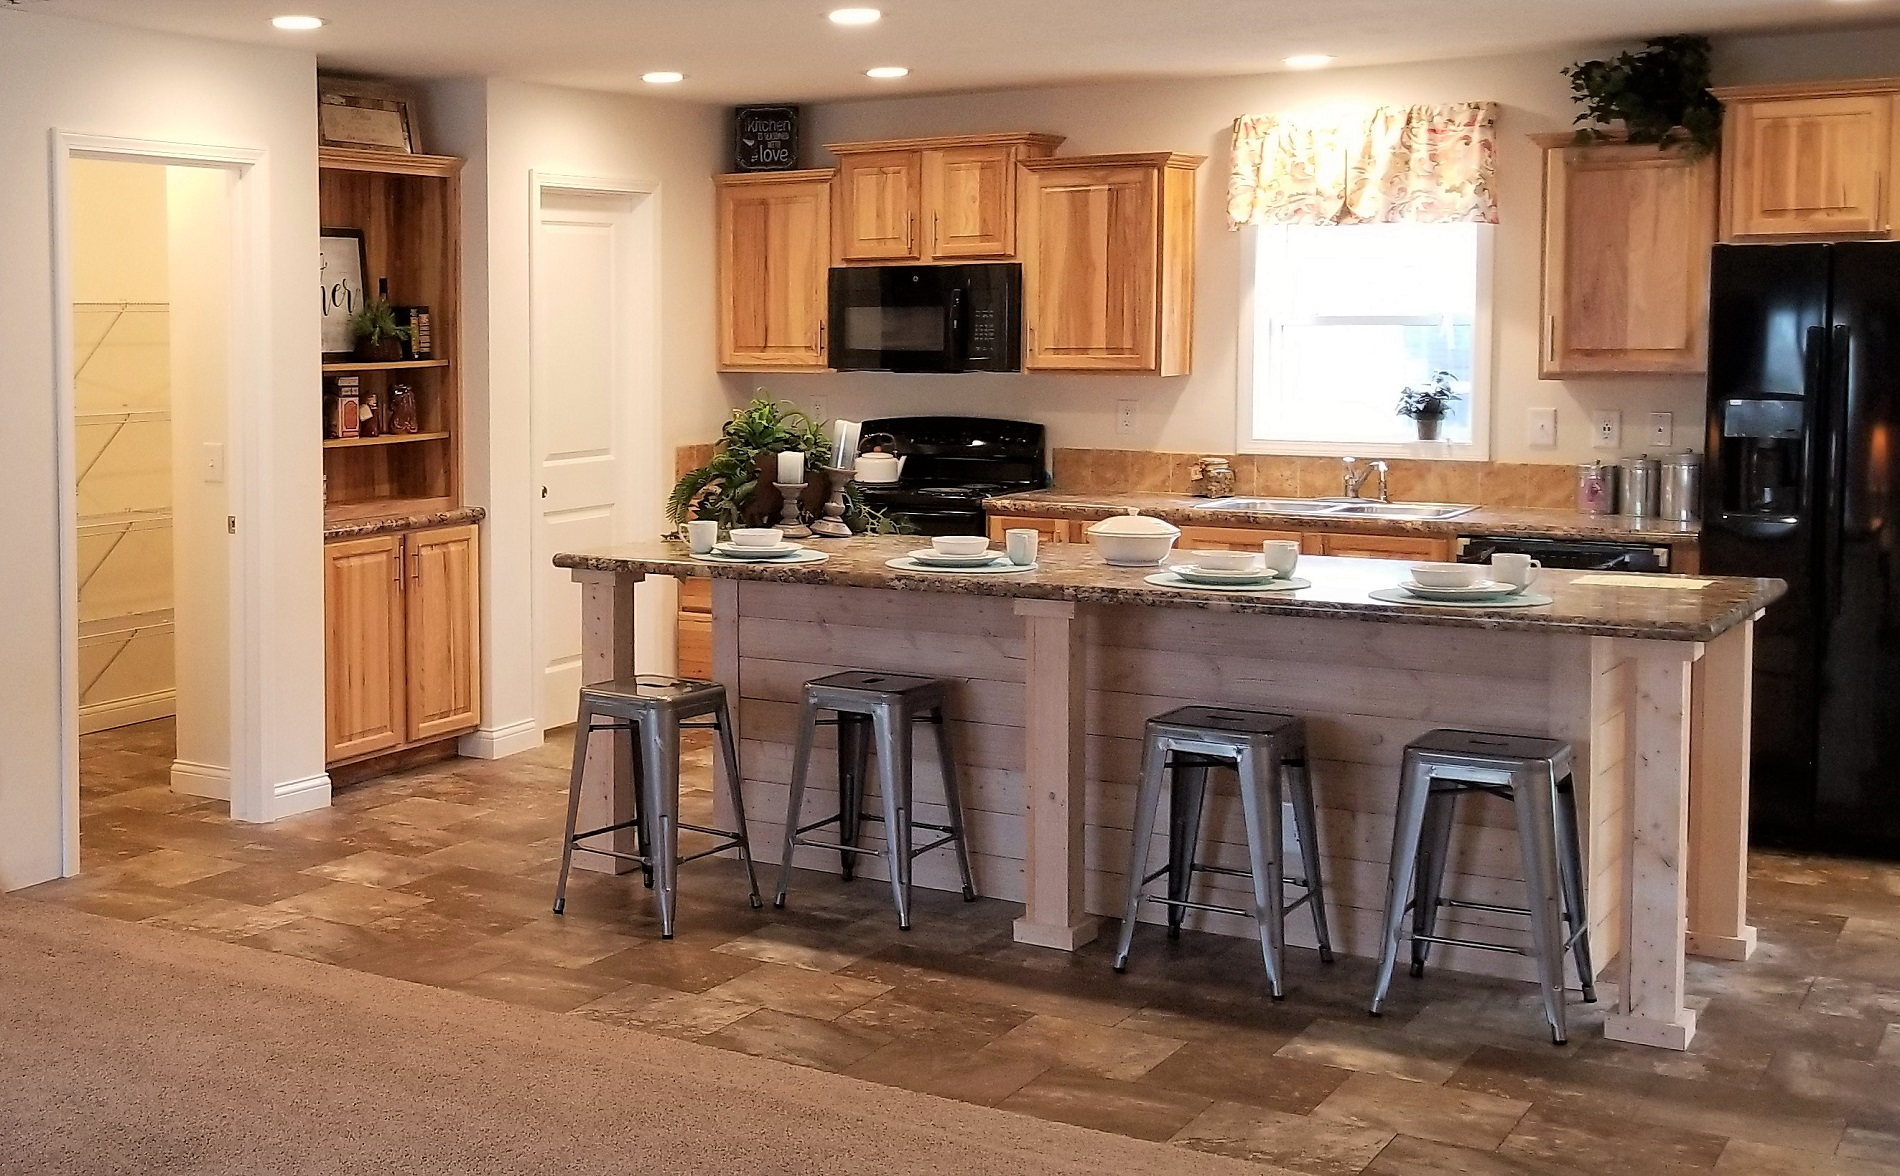 Commodore Limited 2 RG776A Kitchen Henderson 2